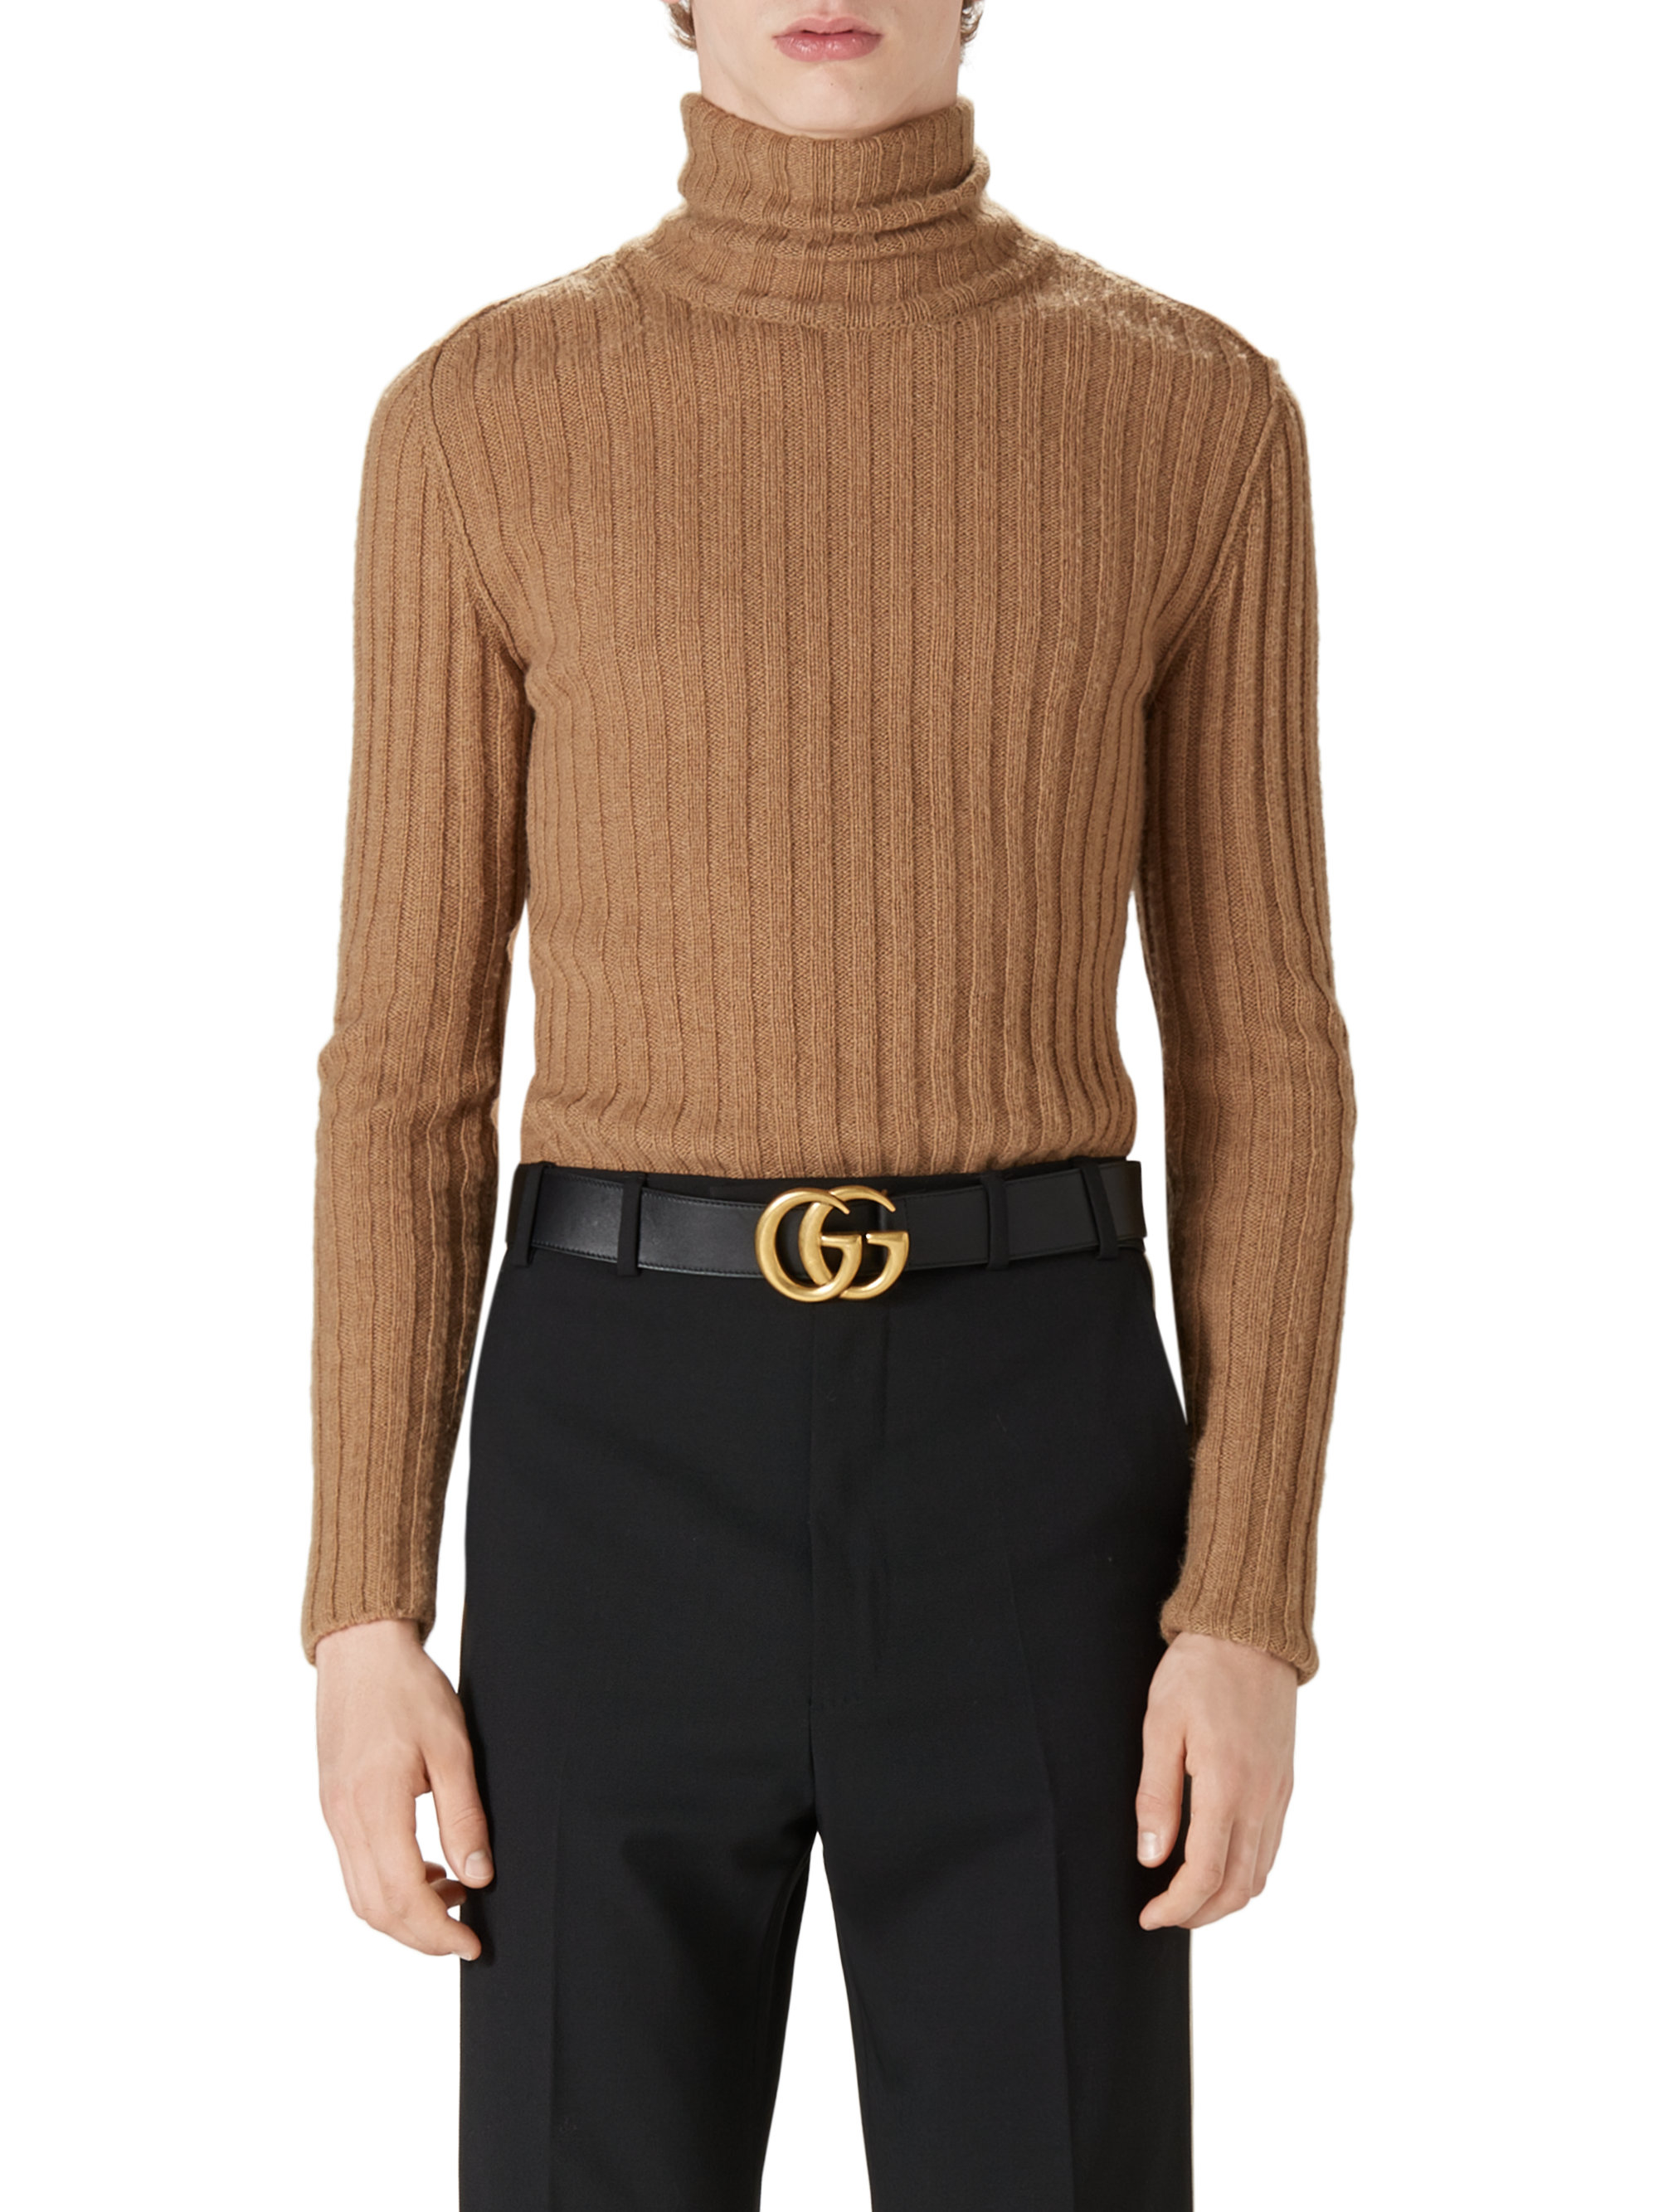 Gucci Camel Hair Ribbed Turtleneck Sweater in Natural for Men | Lyst